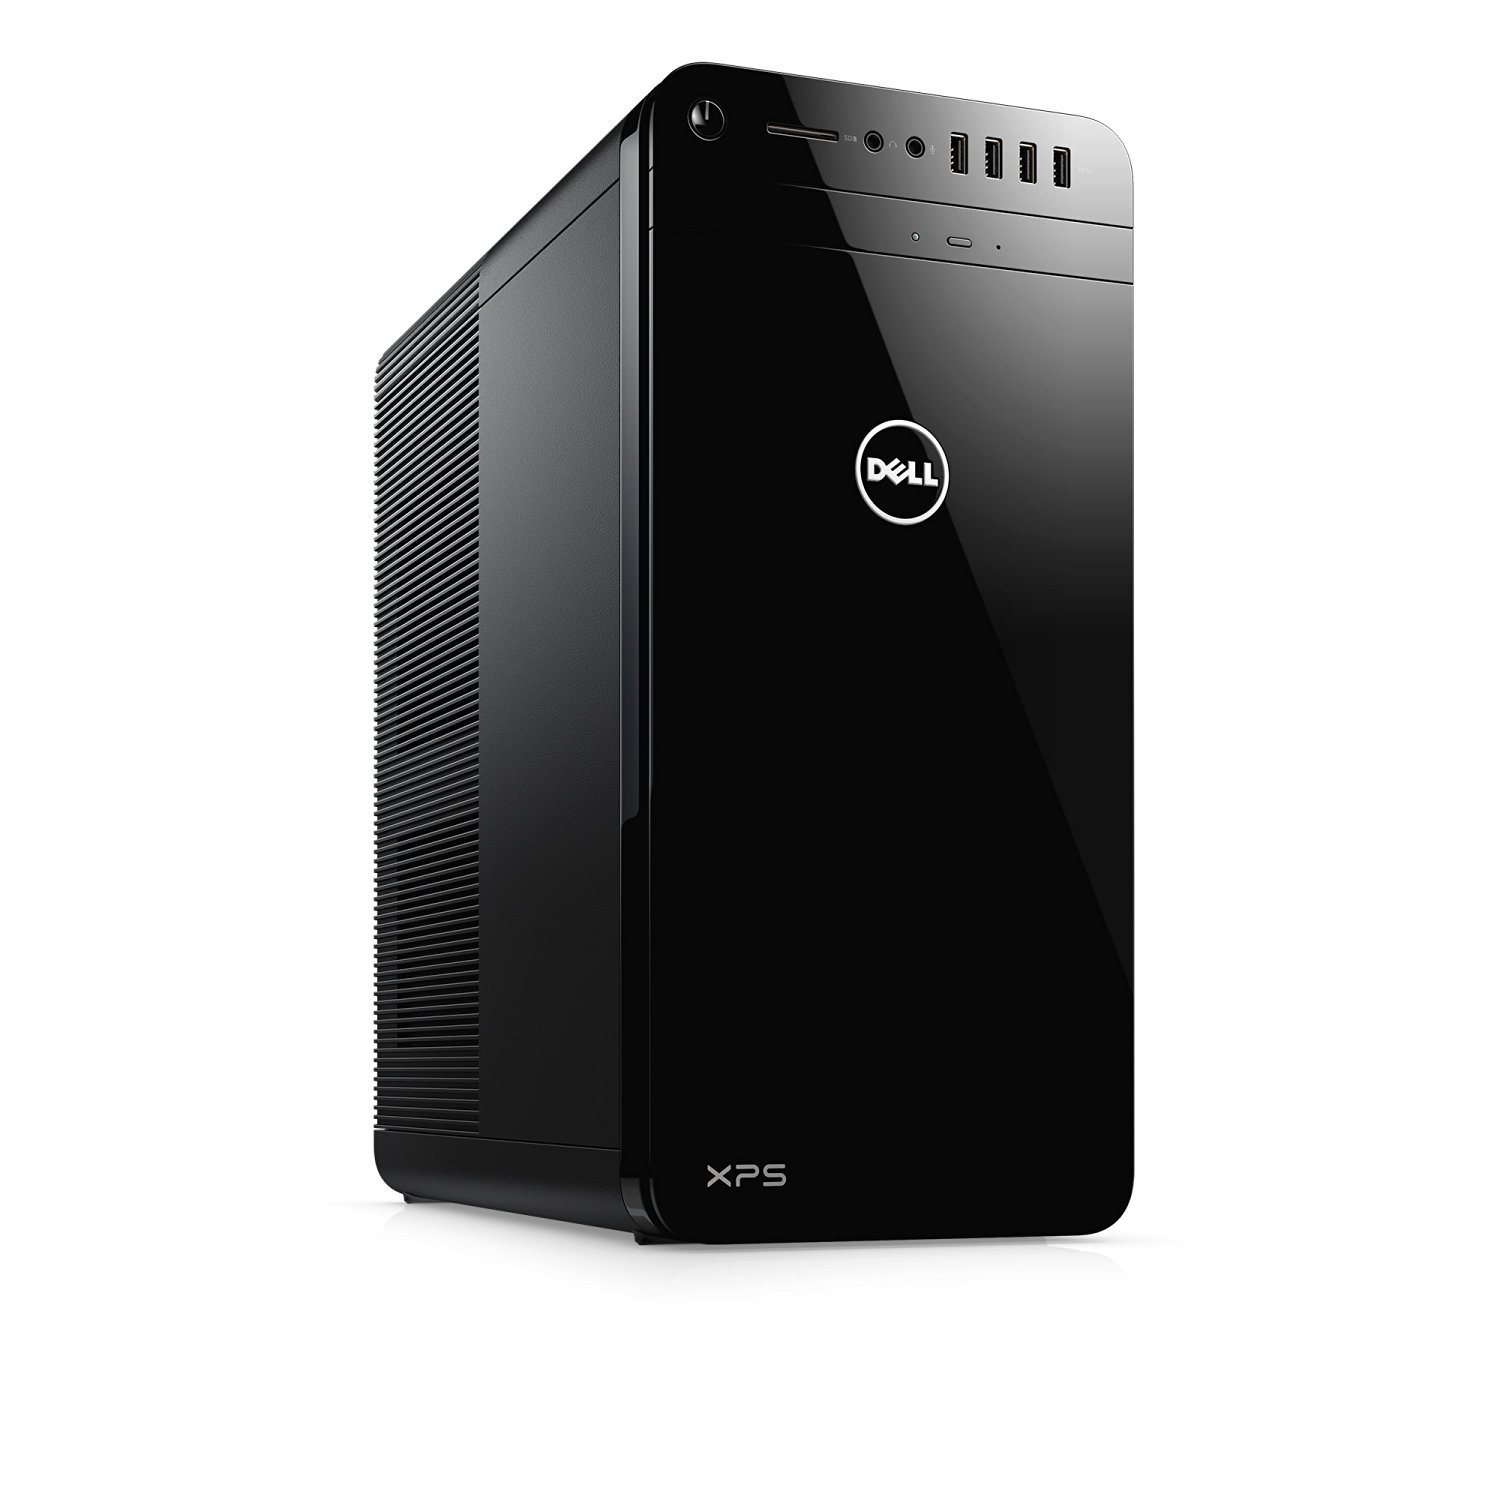 Dell XPS Tower 8th Generation Intel® Core™ i7-8700 6-Core